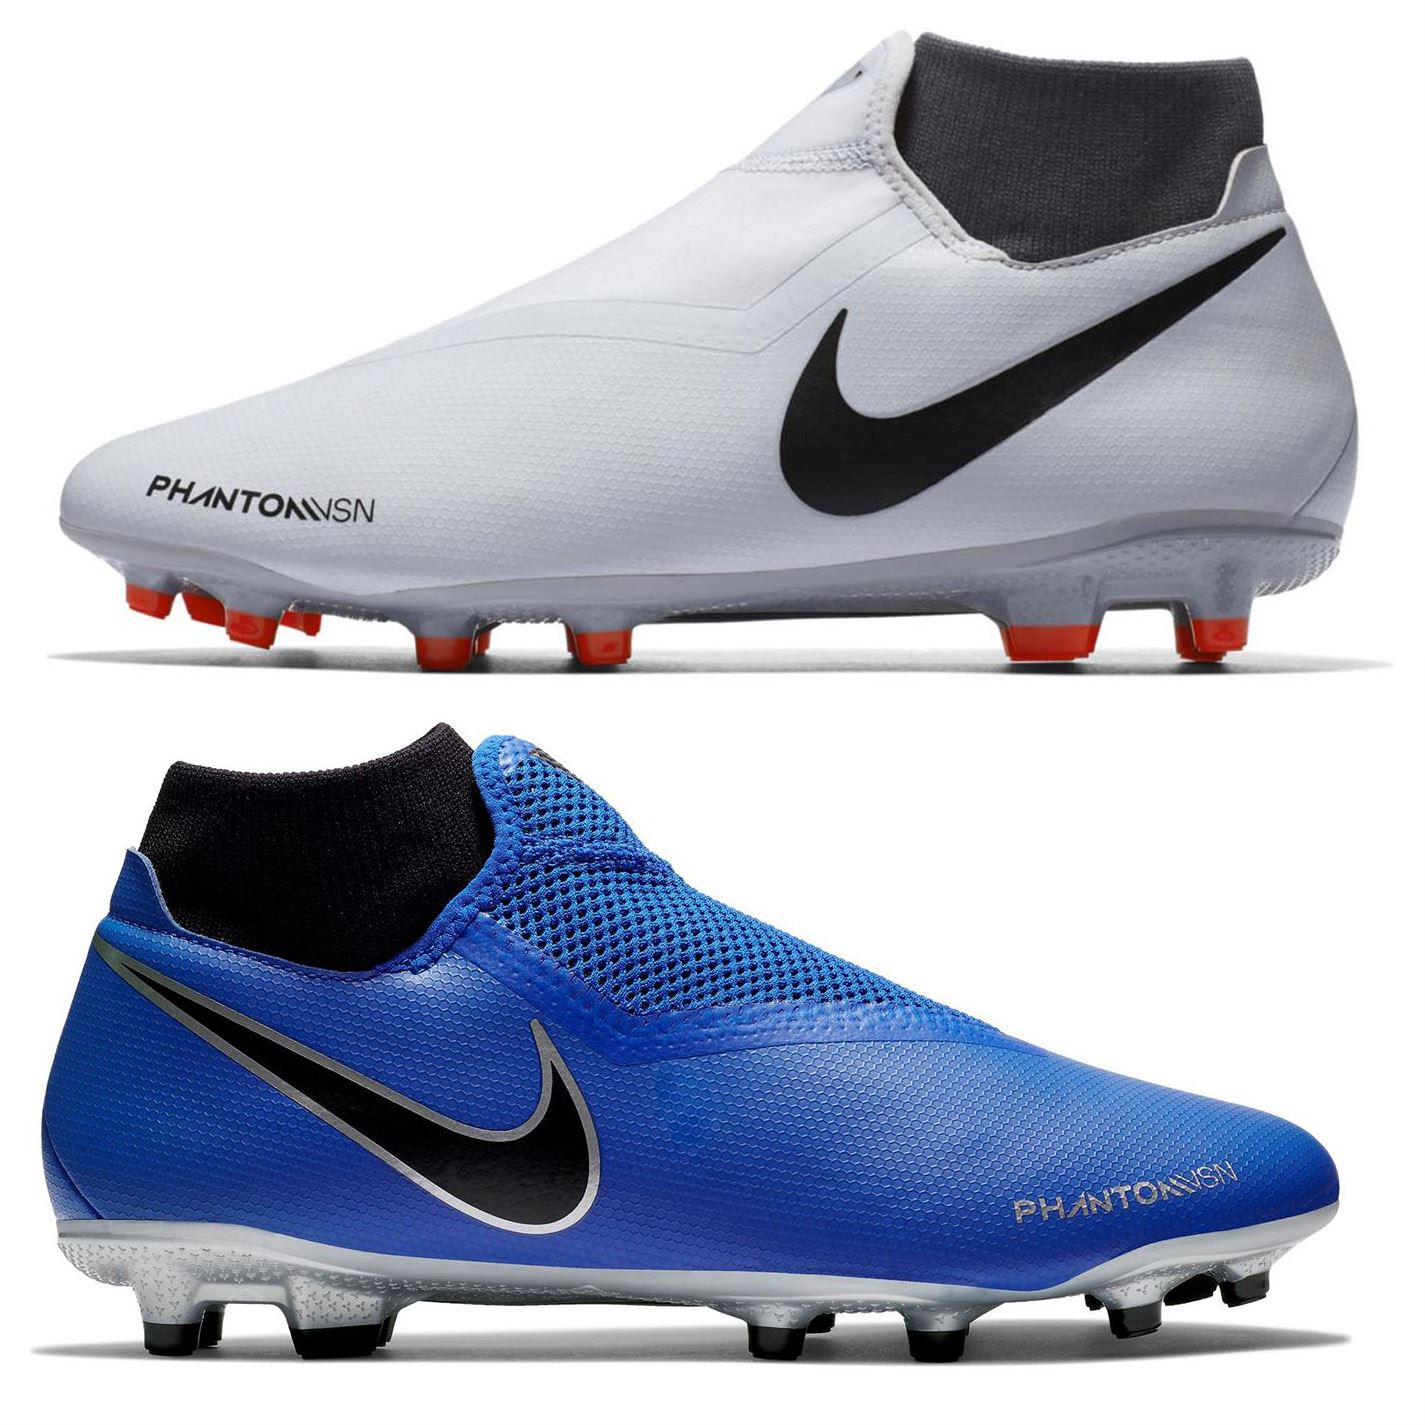 best sneakers be21b 6da8f ... Nike Phantom Vision Academy DF FG Firm Ground Football Boots Mens Soccer  Cleats ...